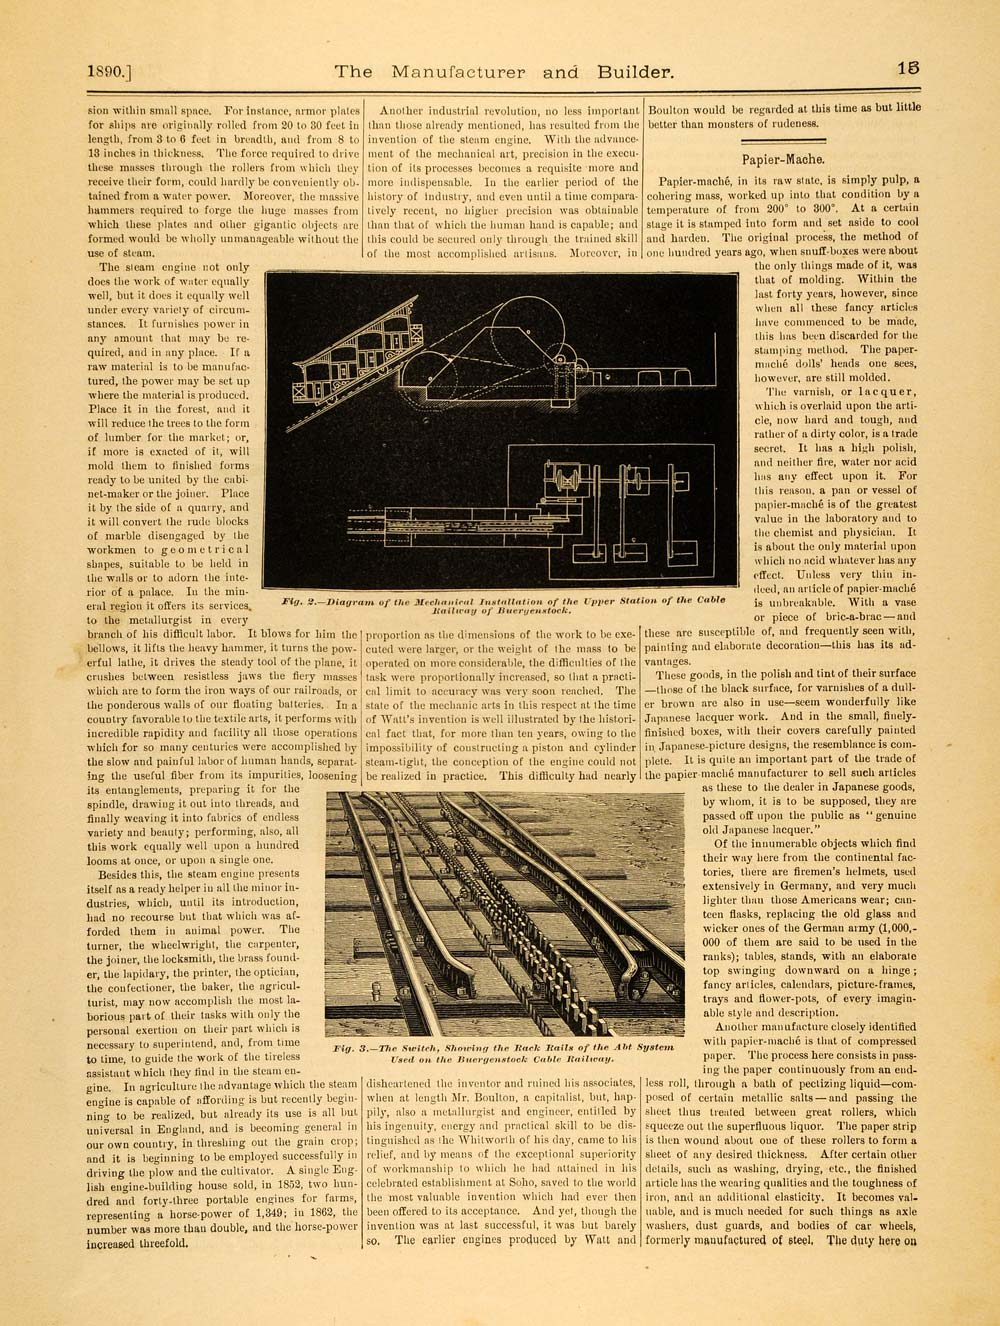 Railroads & Trains - Period Paper